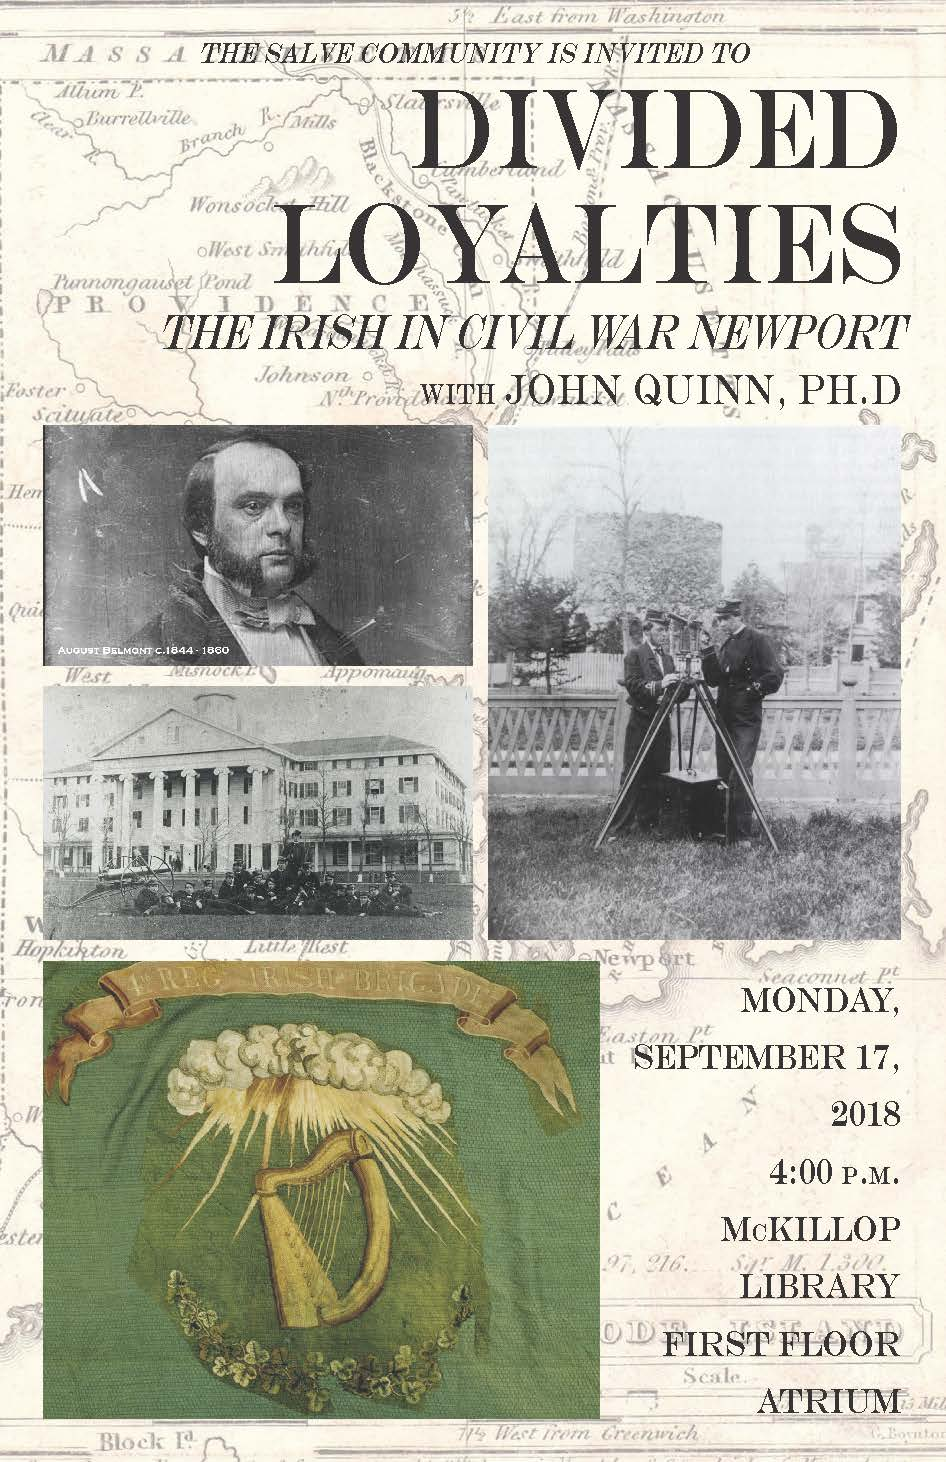 Faculty Lecture Series: Divided Loyalties The Irish in Civil War Newport with John Quinn, Ph.D